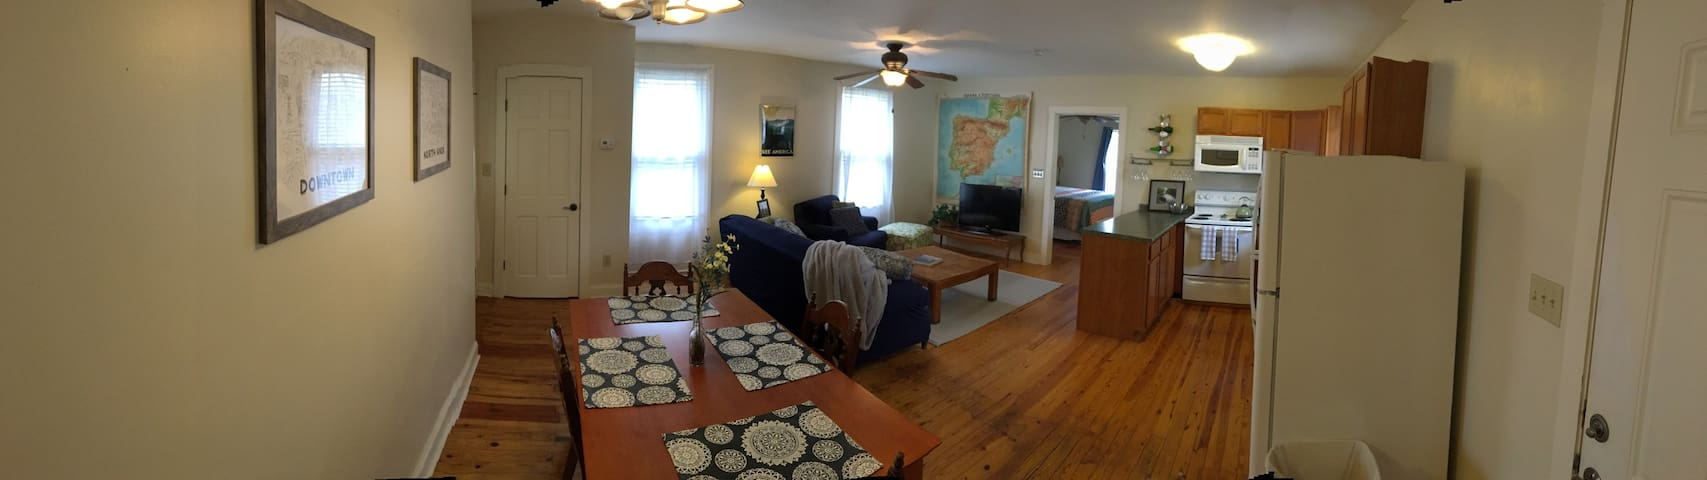 Cozy and Convenient Apartment in Old North Knox - Knoxville - Lägenhet